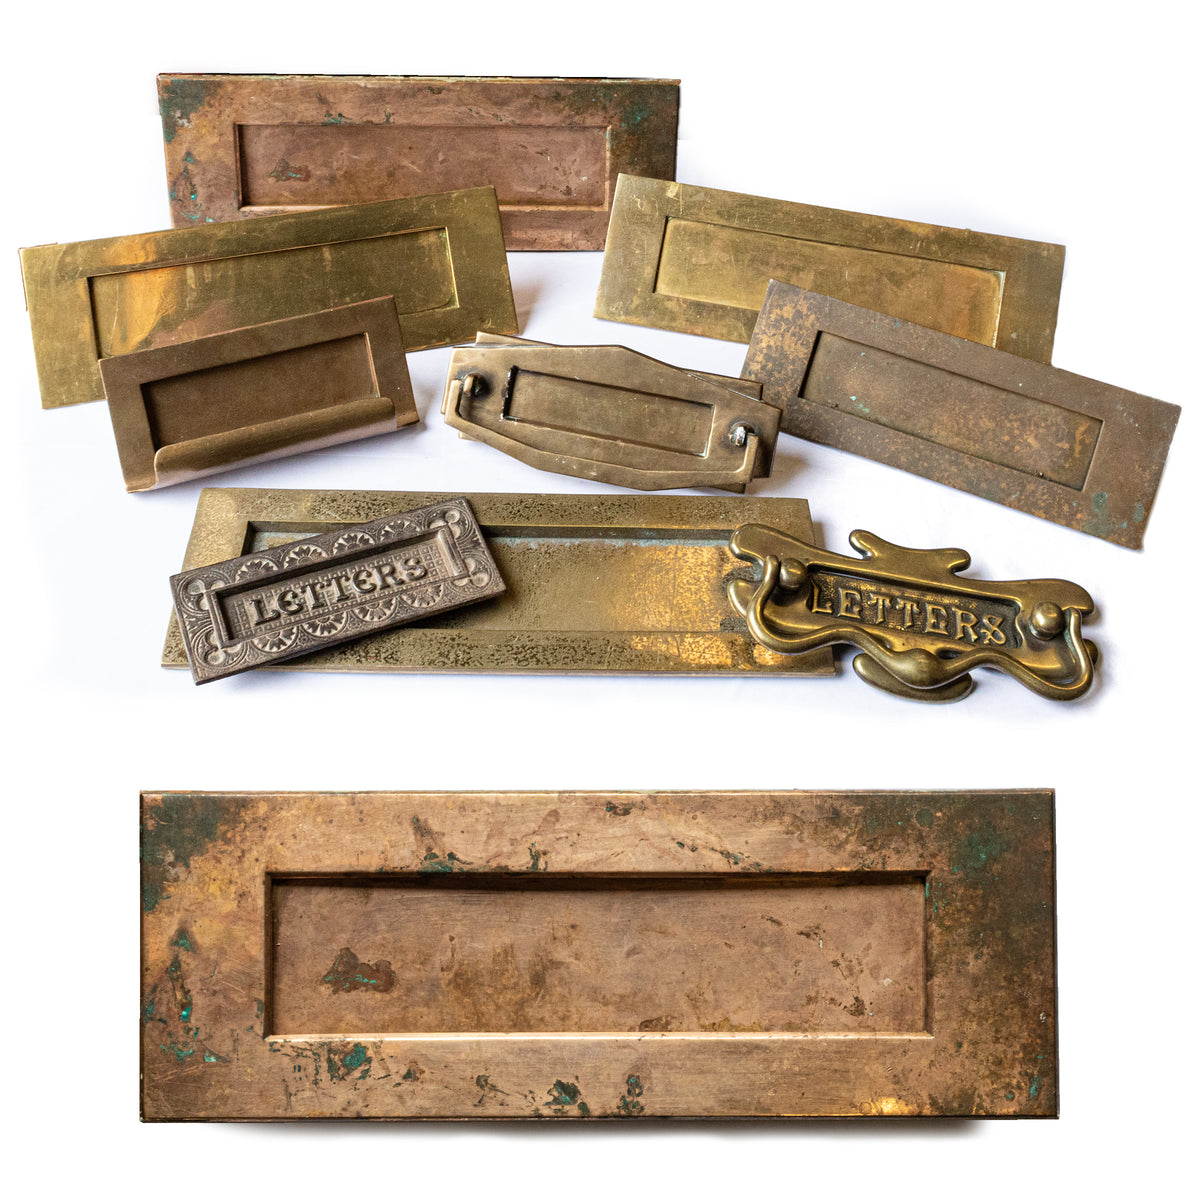 Antique and Reclaimed Brass Letterboxes | The Architectural Forum